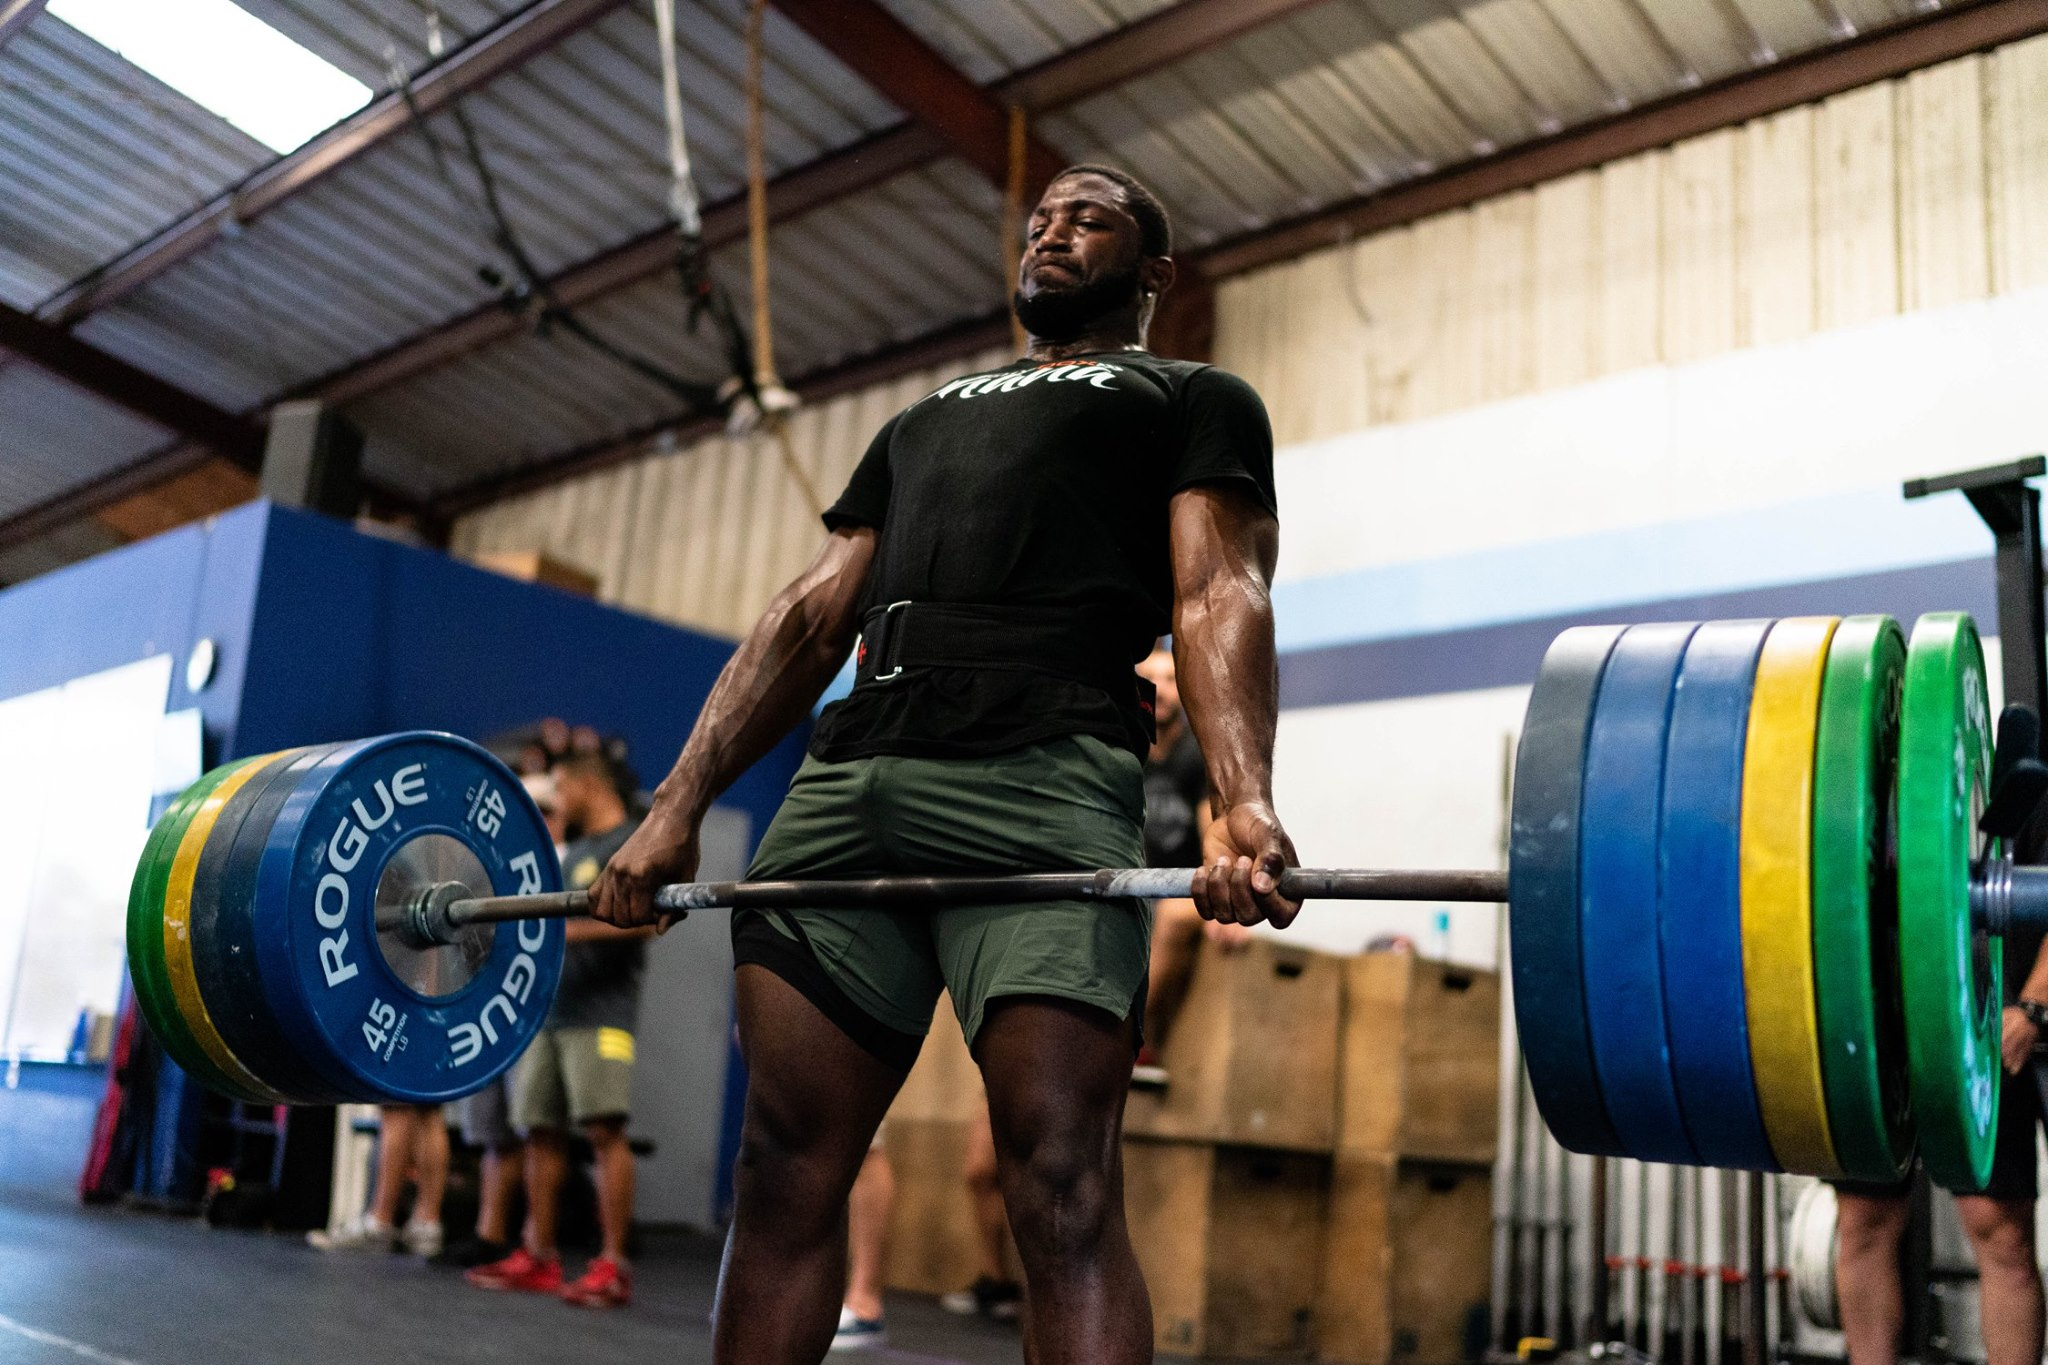 Skyline athlete Tobi hits a 485# deadlift with room to spare.